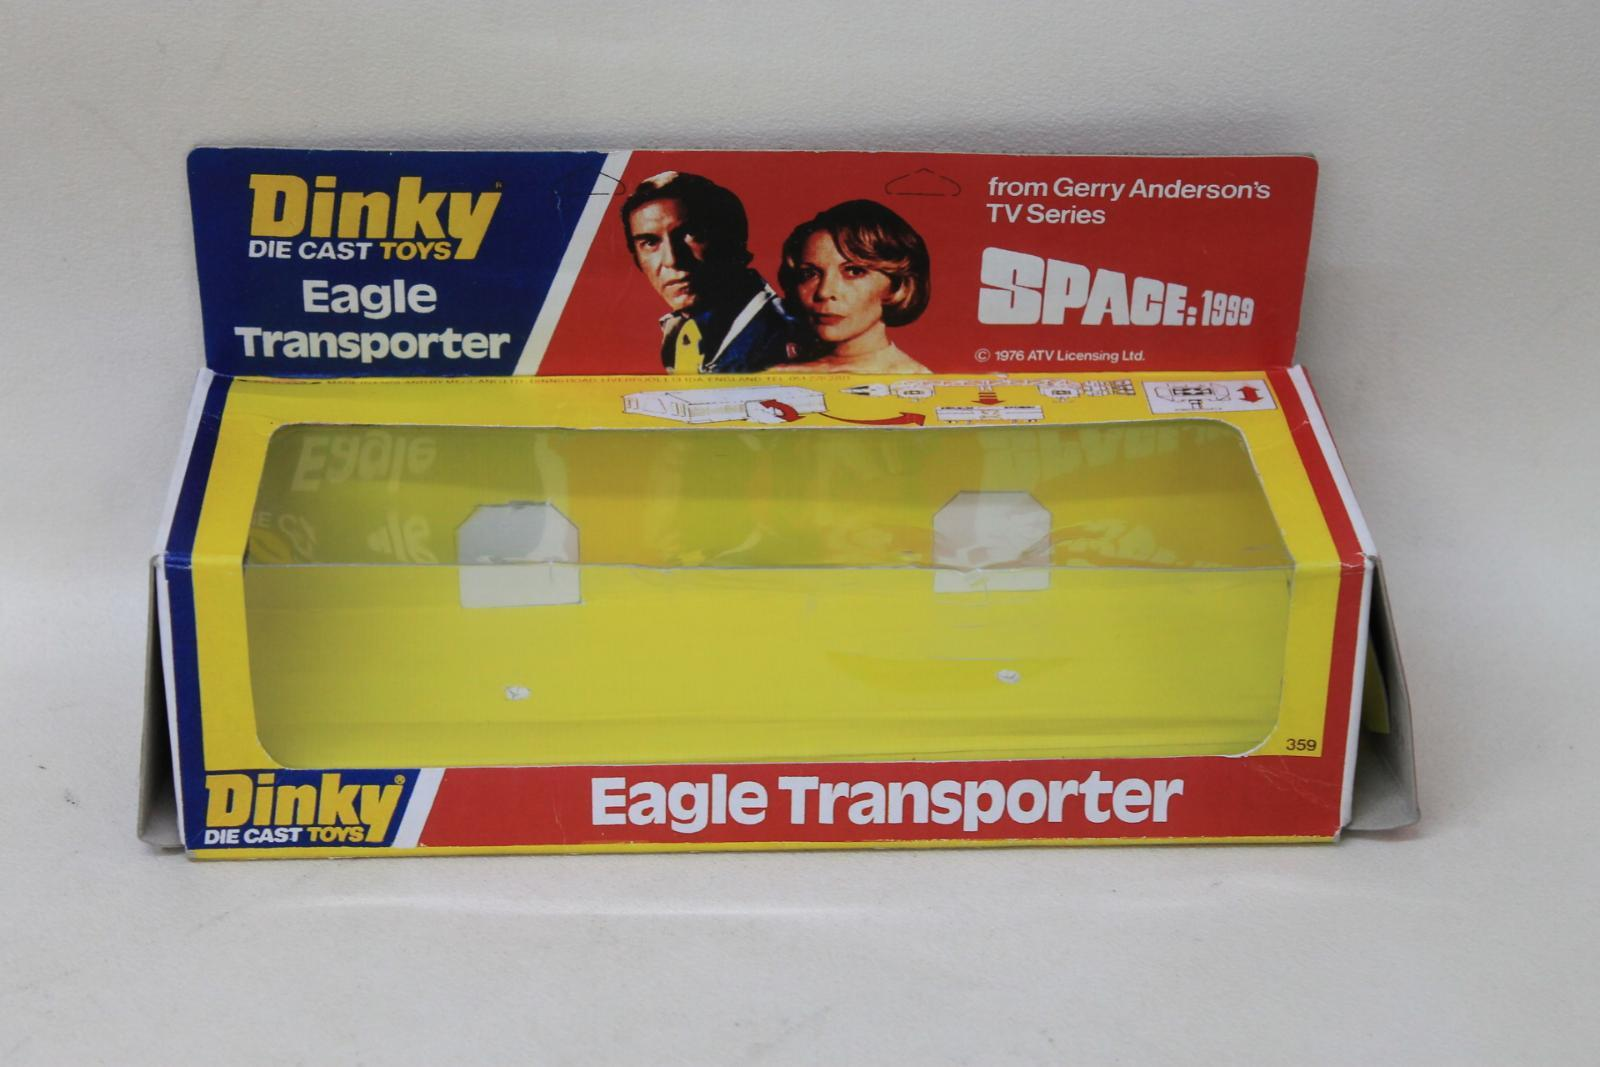 DINKY-TOYS-Eagle-Transporter-No-359-Space-1999-UFO-Attack-Empty-Die-Cast-Toy-Box